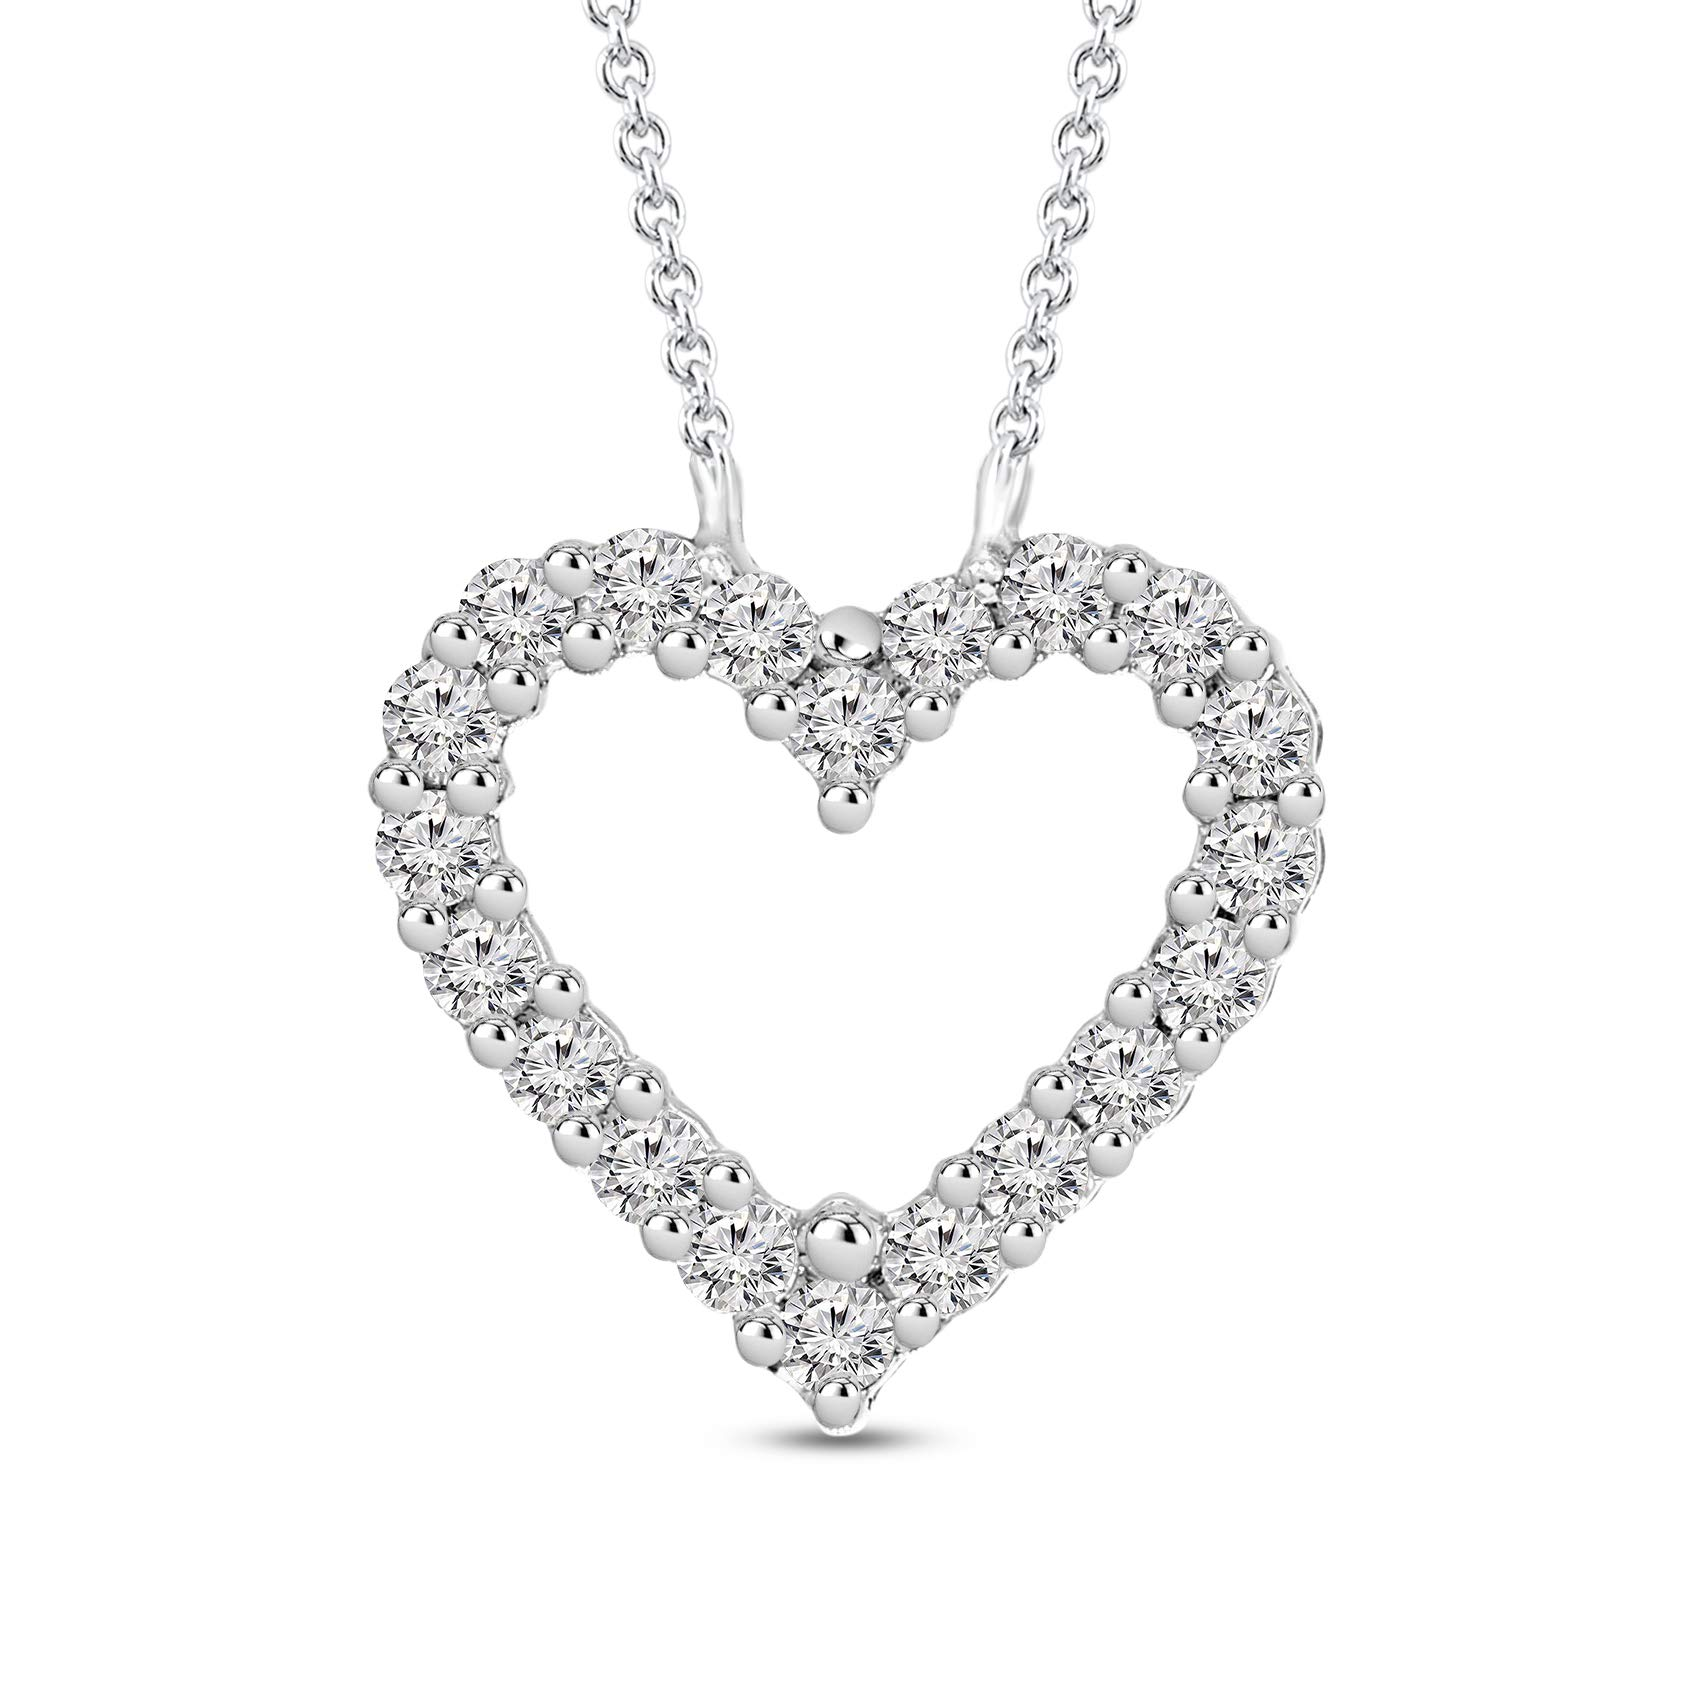 Mothers Day Gift 1/2 ctw IGI Certified Heart Necklace For Women Natural Diamond Heart Pendant I1-GH Quality 10K Gold 100% Real Diamond Pendant (1/2 ctw, White Gold) (Jewelry Gifts For Mothers Day)